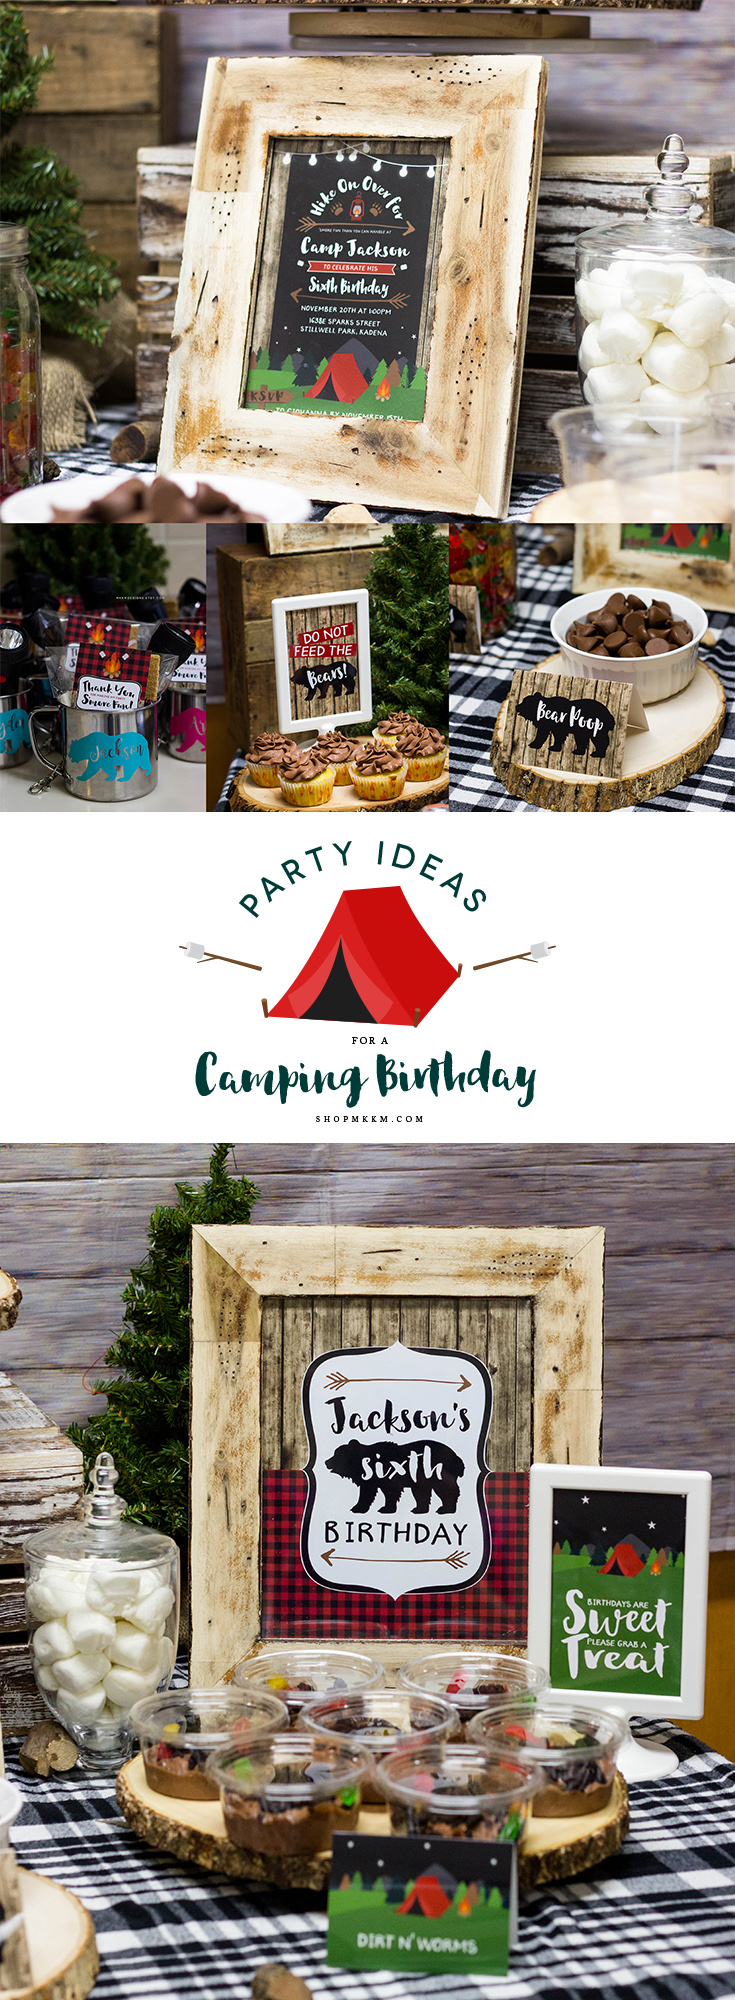 Camping party ideas and free printable favor tags over on the shopmkkm.com blog